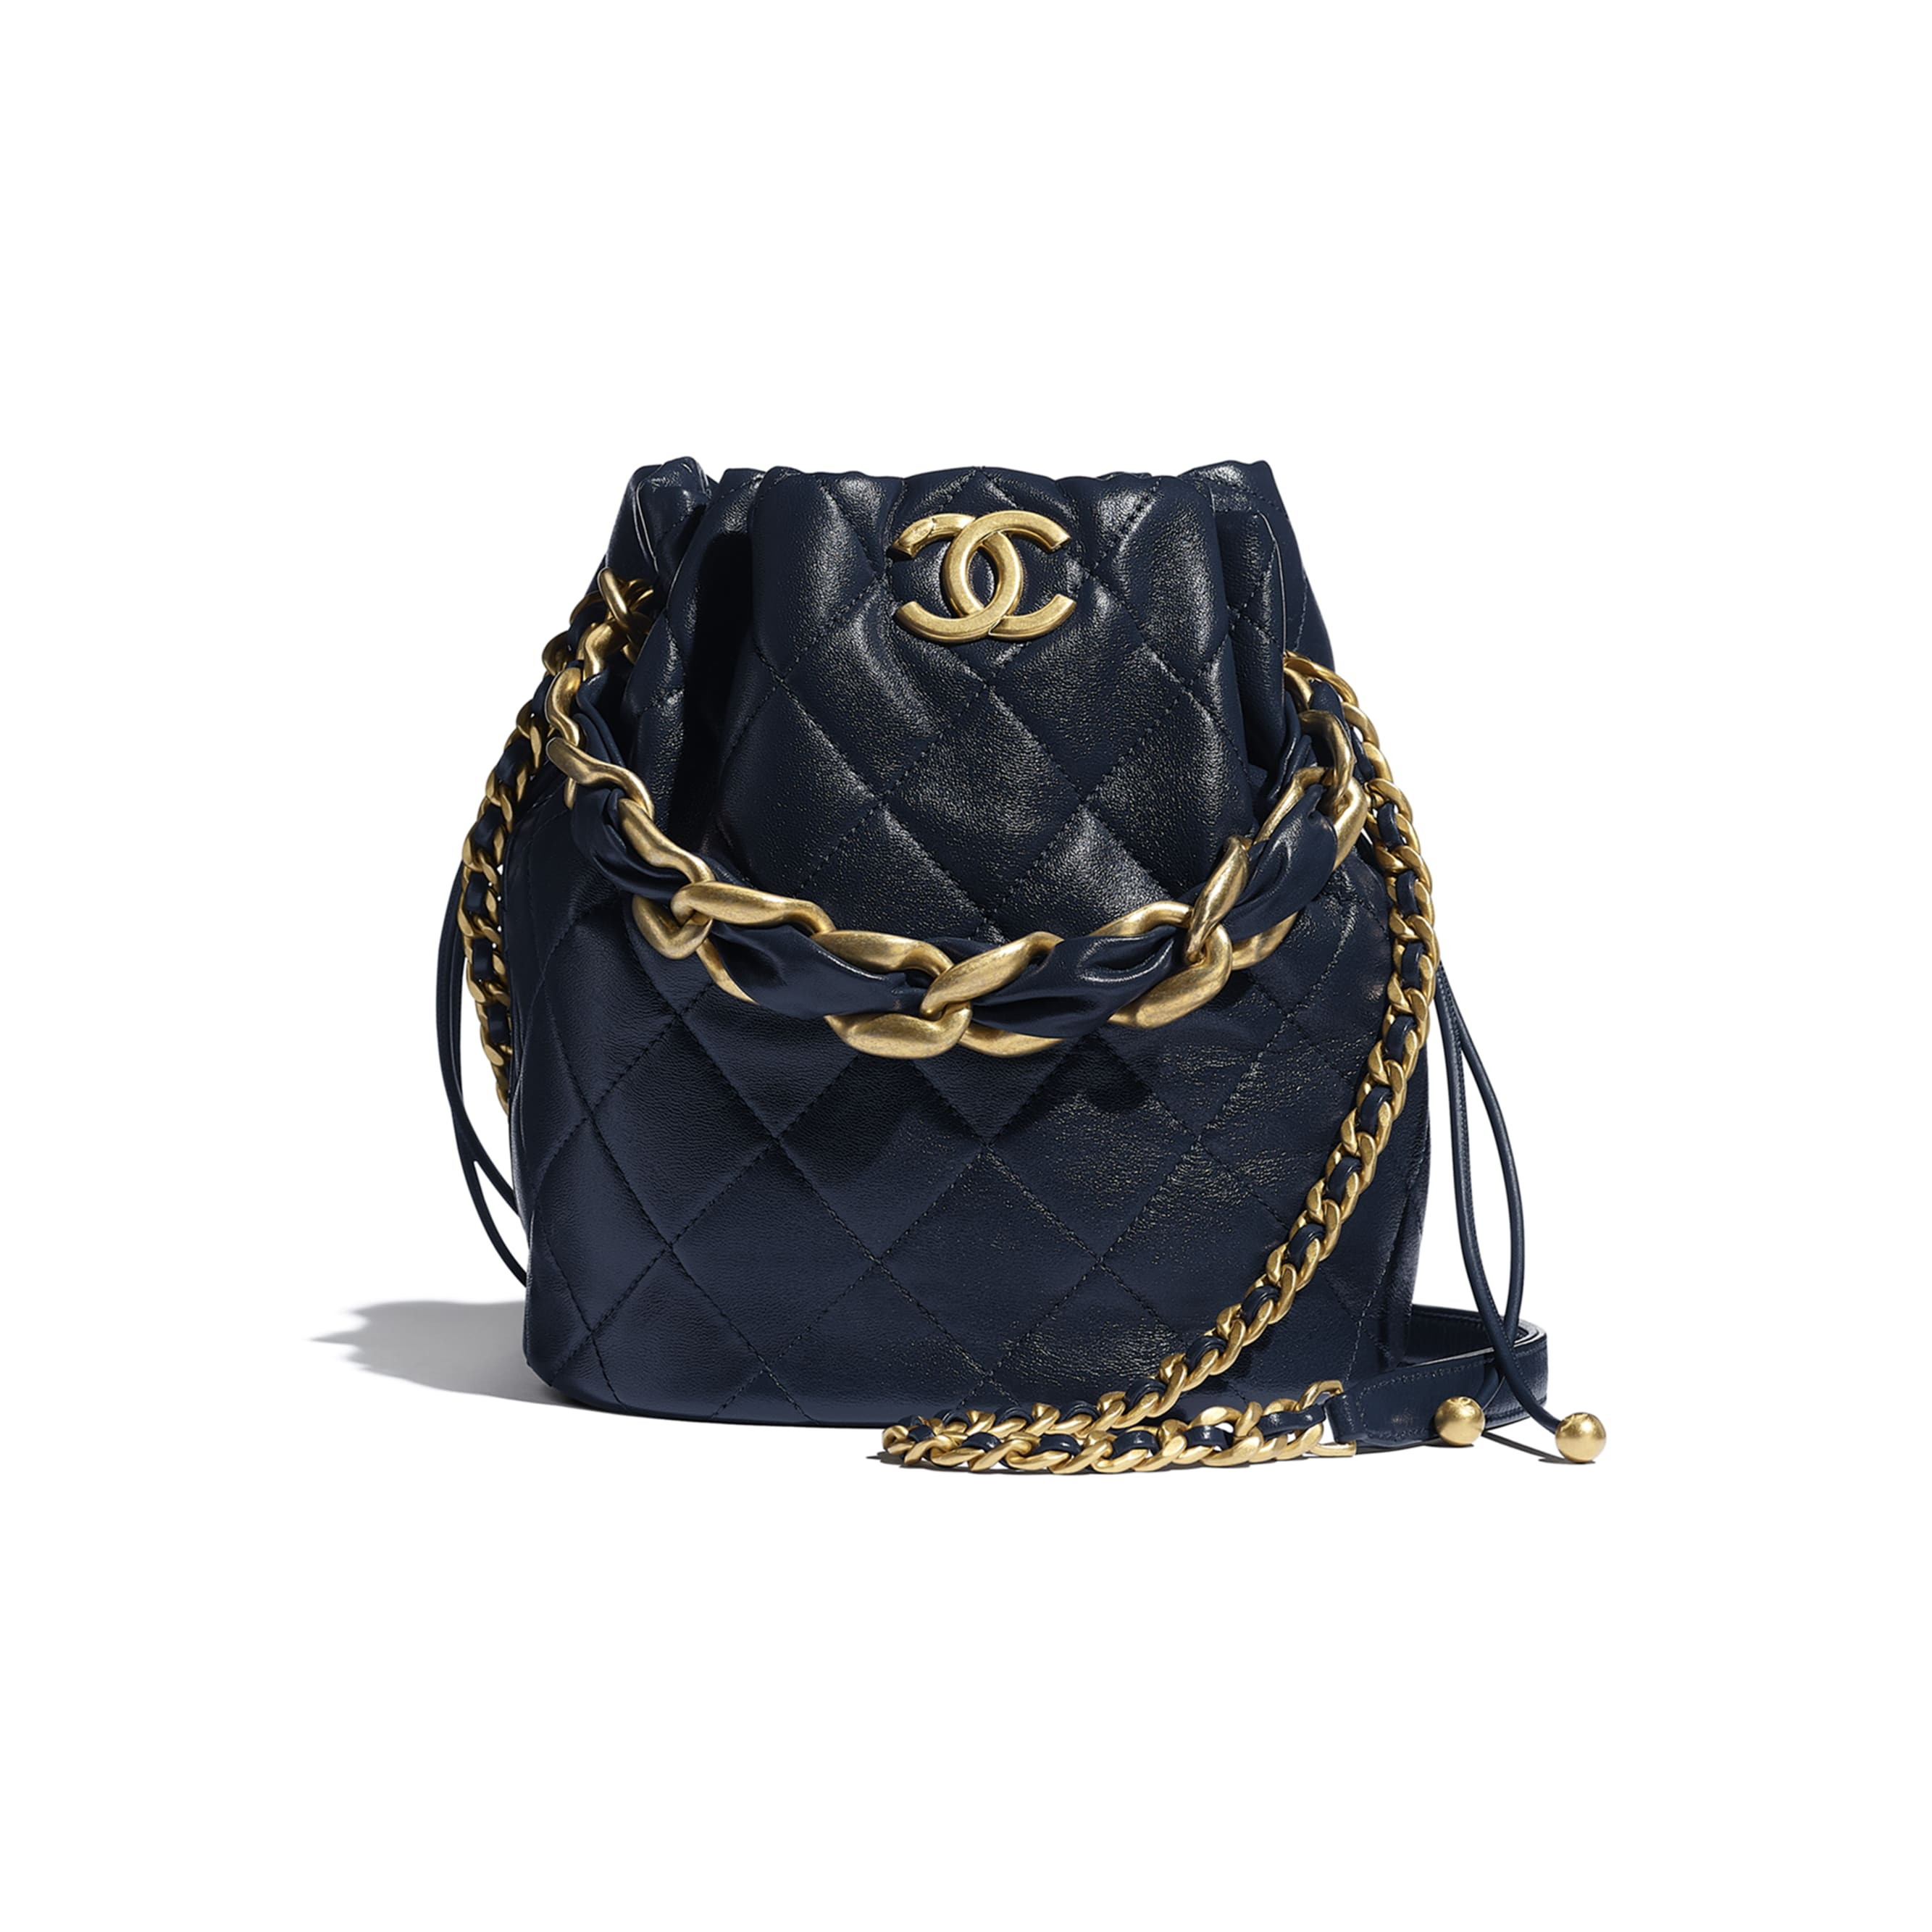 Large Drawstring Bag - Navy Blue - Shiny Lambskin & Gold-Tone Metal - CHANEL - Default view - see standard sized version